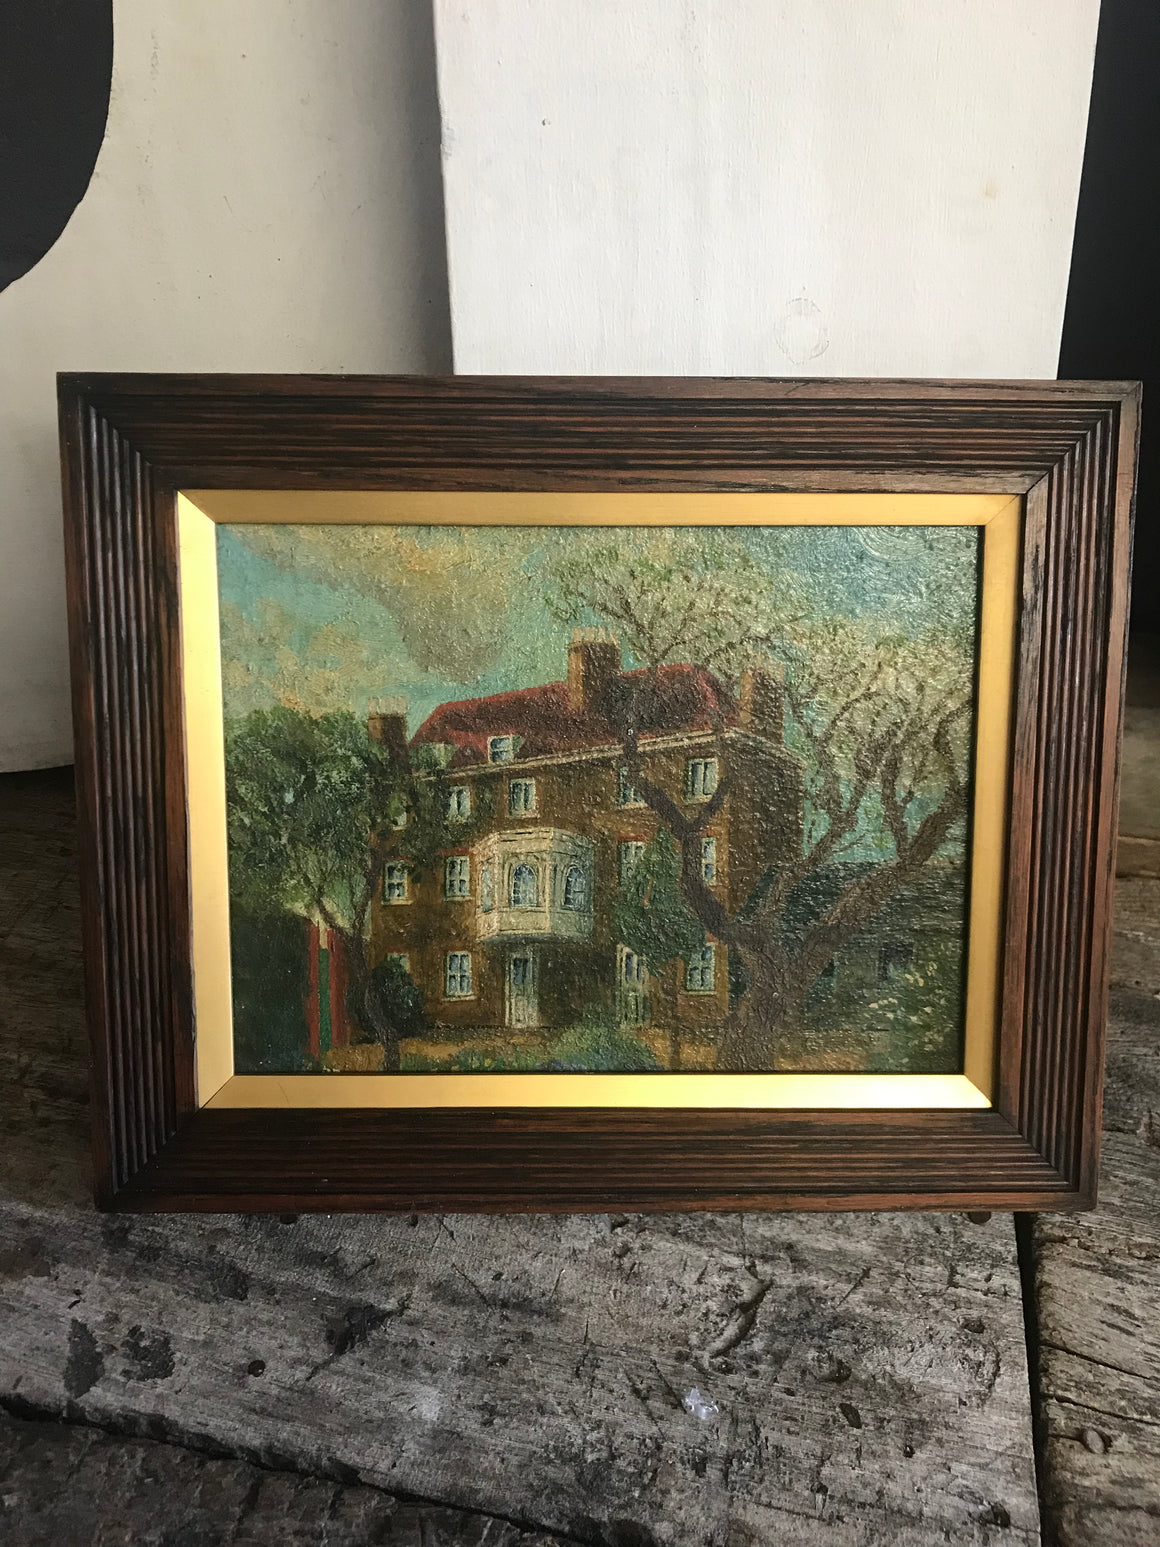 William Hogarth: An Arts and Crafts architectural country house oil painting